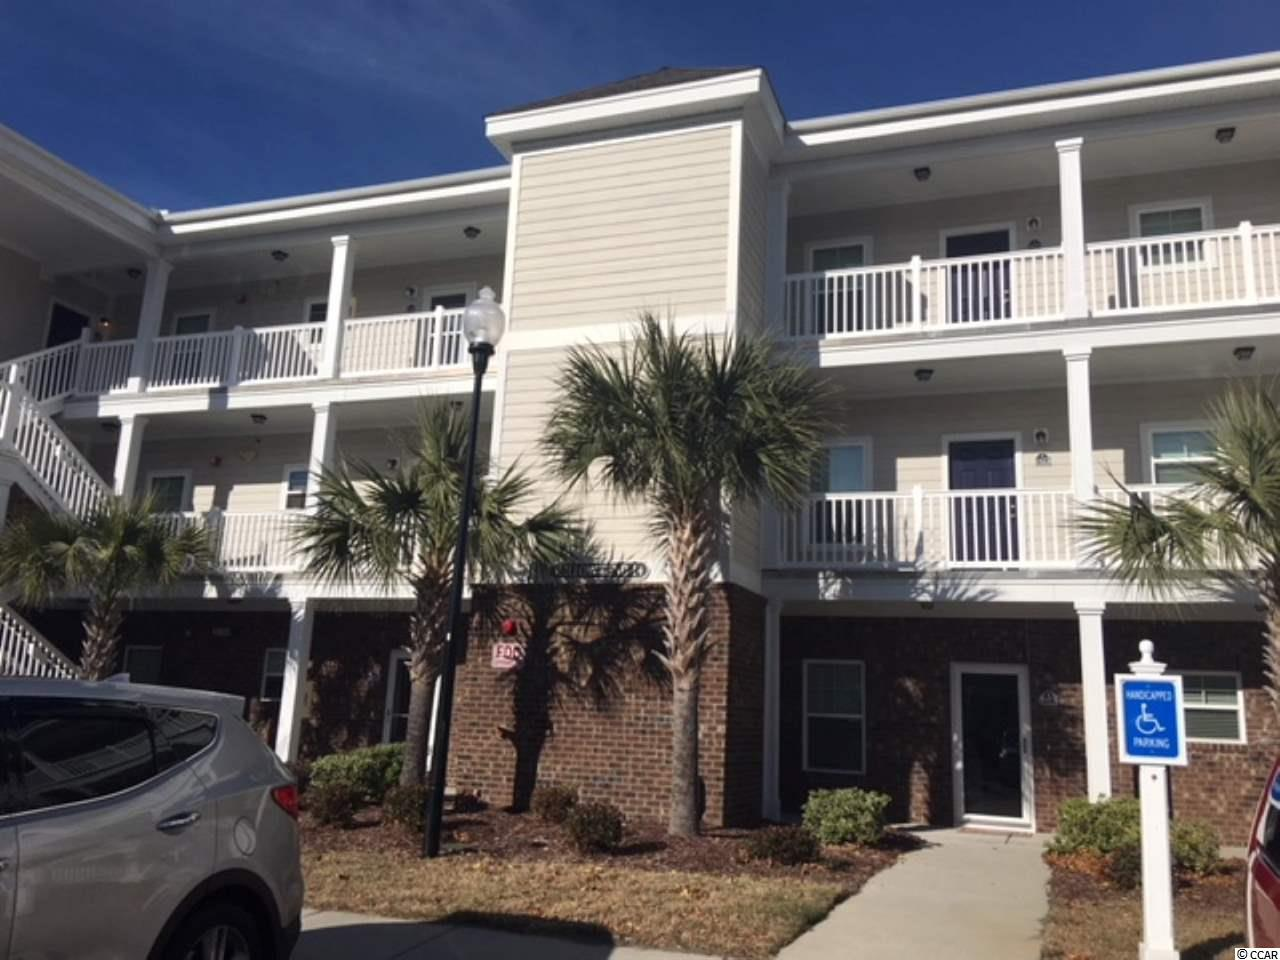 Lake/Pond View Condo in Willow Bend - Barefoot - NMB : North Myrtle Beach South Carolina